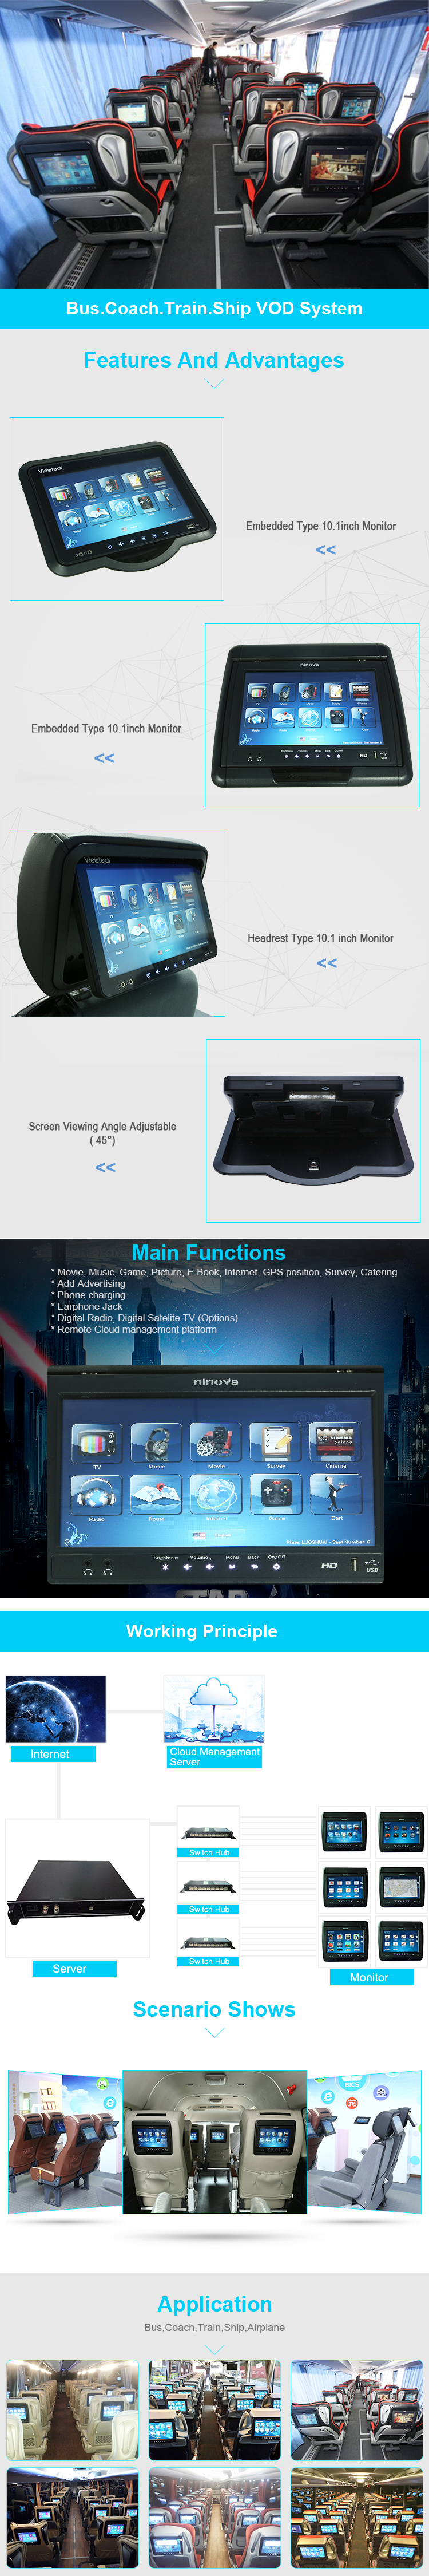 10.1'' Android 6.0 bus seat monitor with bus vod server powerful management cloud platform